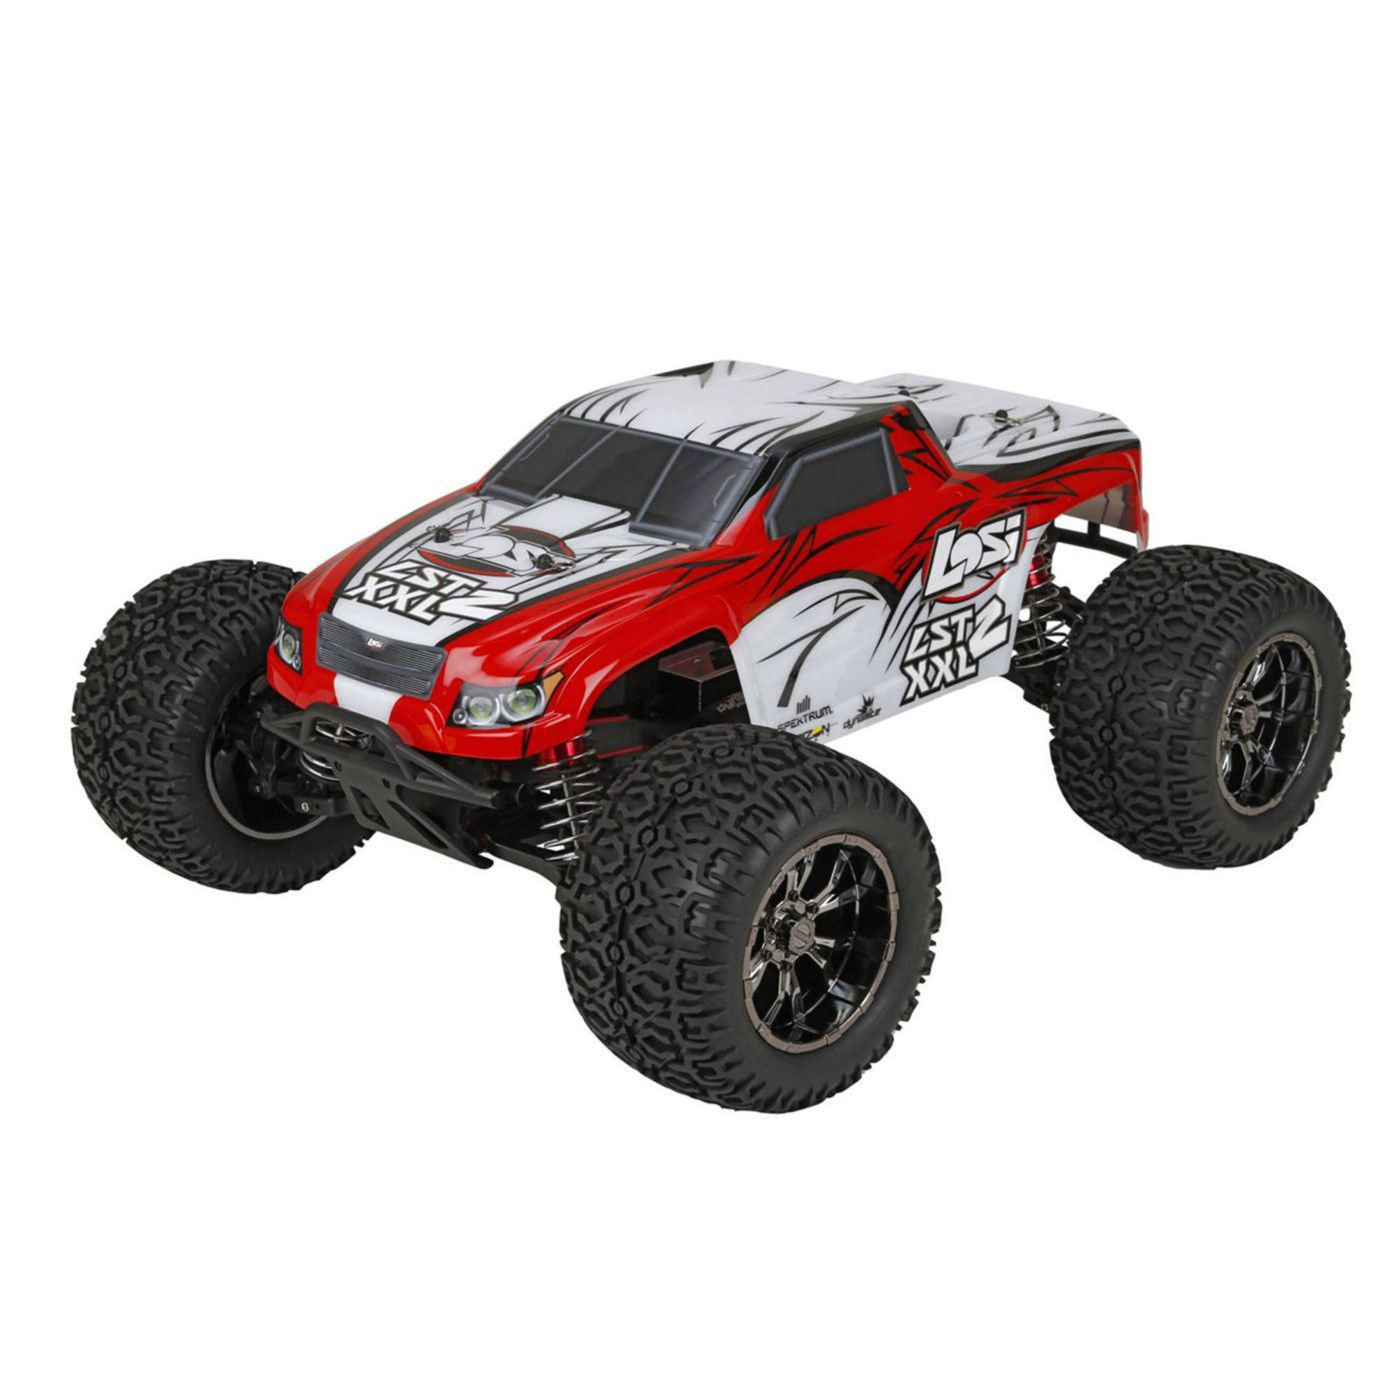 Losi 1 8 LST XXL 2 4WD Gas Monster Truck RTR with AVC Technology LOS